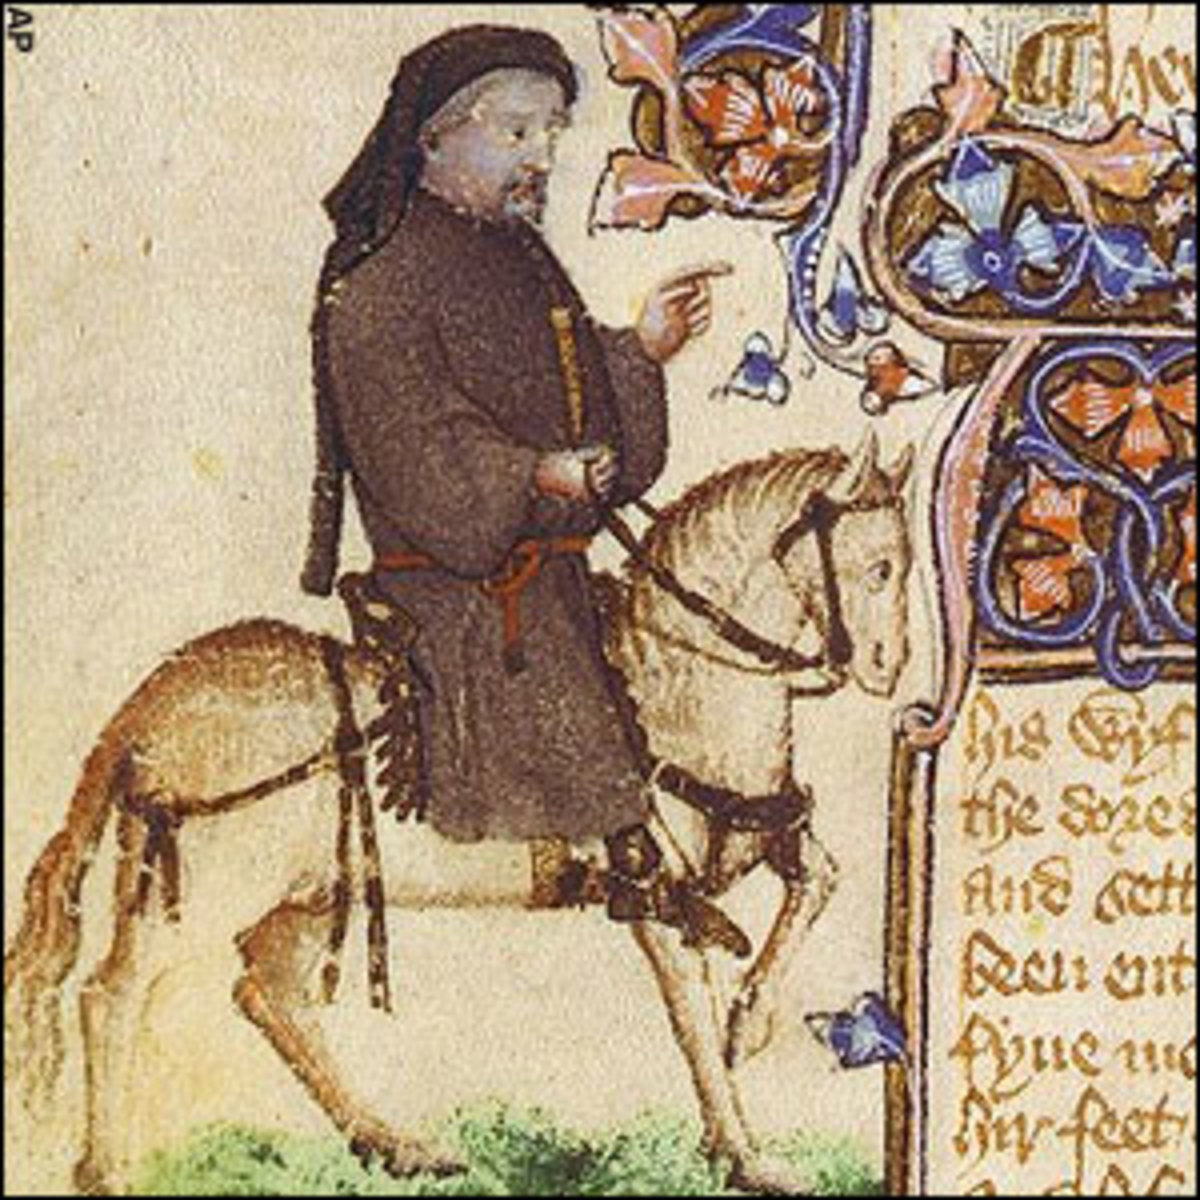 Geoffrey Chaucer, pictured as a pilgrim, from a contemporary illustration.